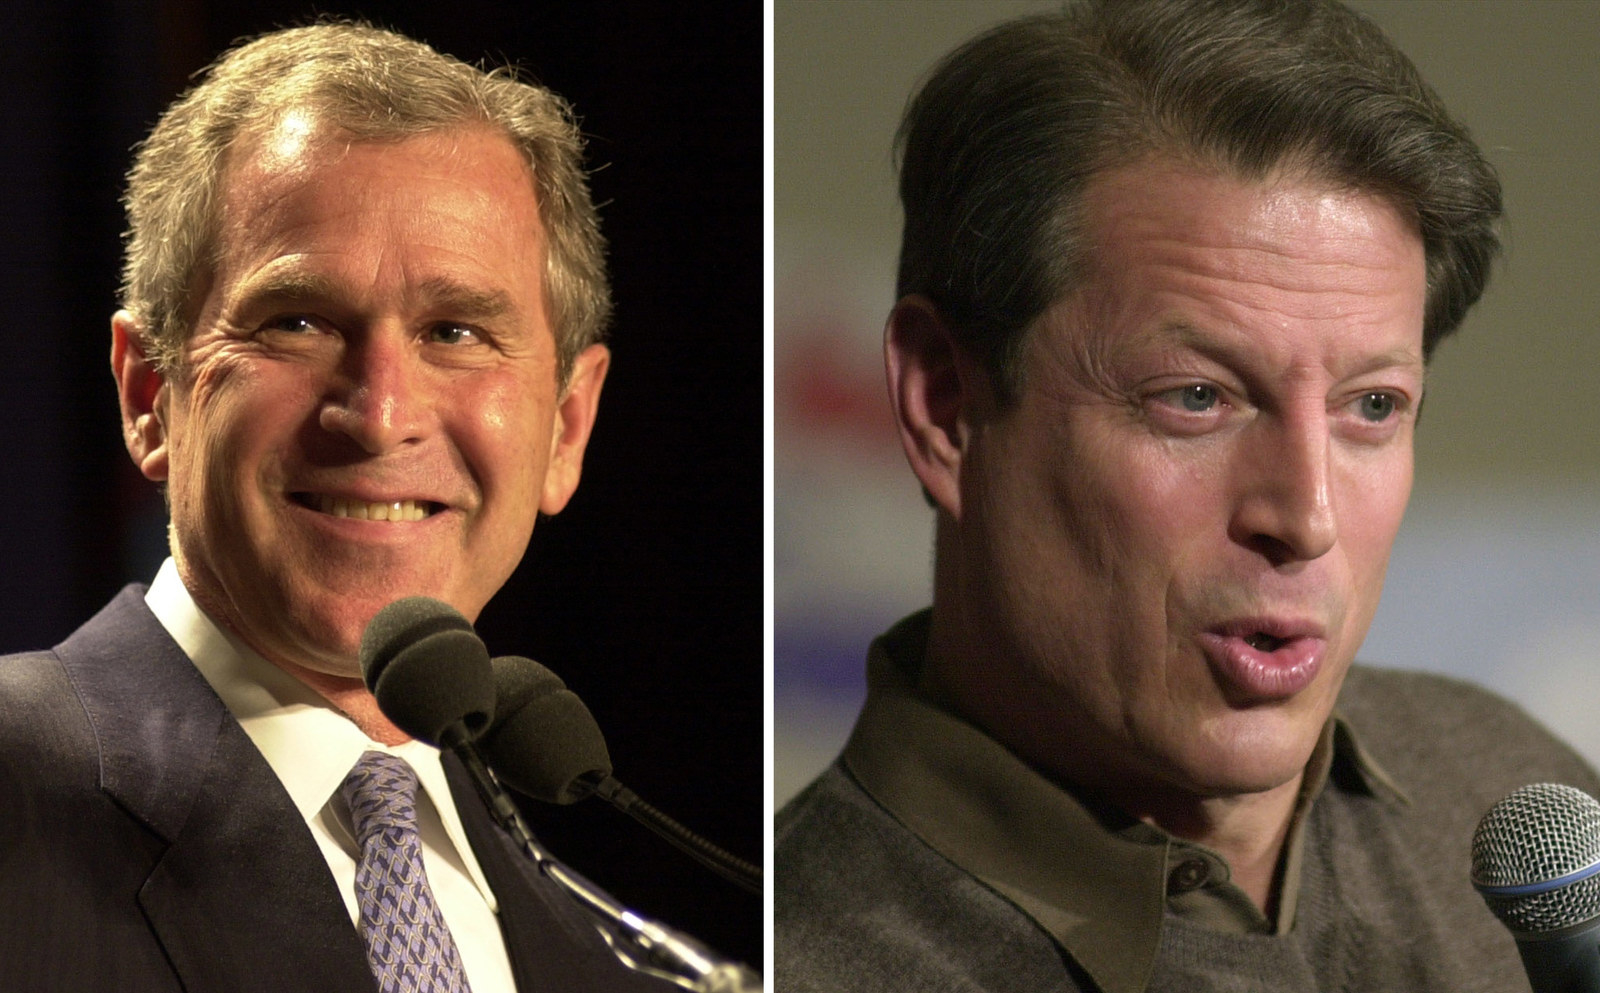 a comparison of presidential debates between bush and gore In this composite image a comparison has been made between former us presidential candidates george w bush (left) and al gore in 2000 george w bush won the presidential election to become the president of the united states in the final presidential debate wednesday.